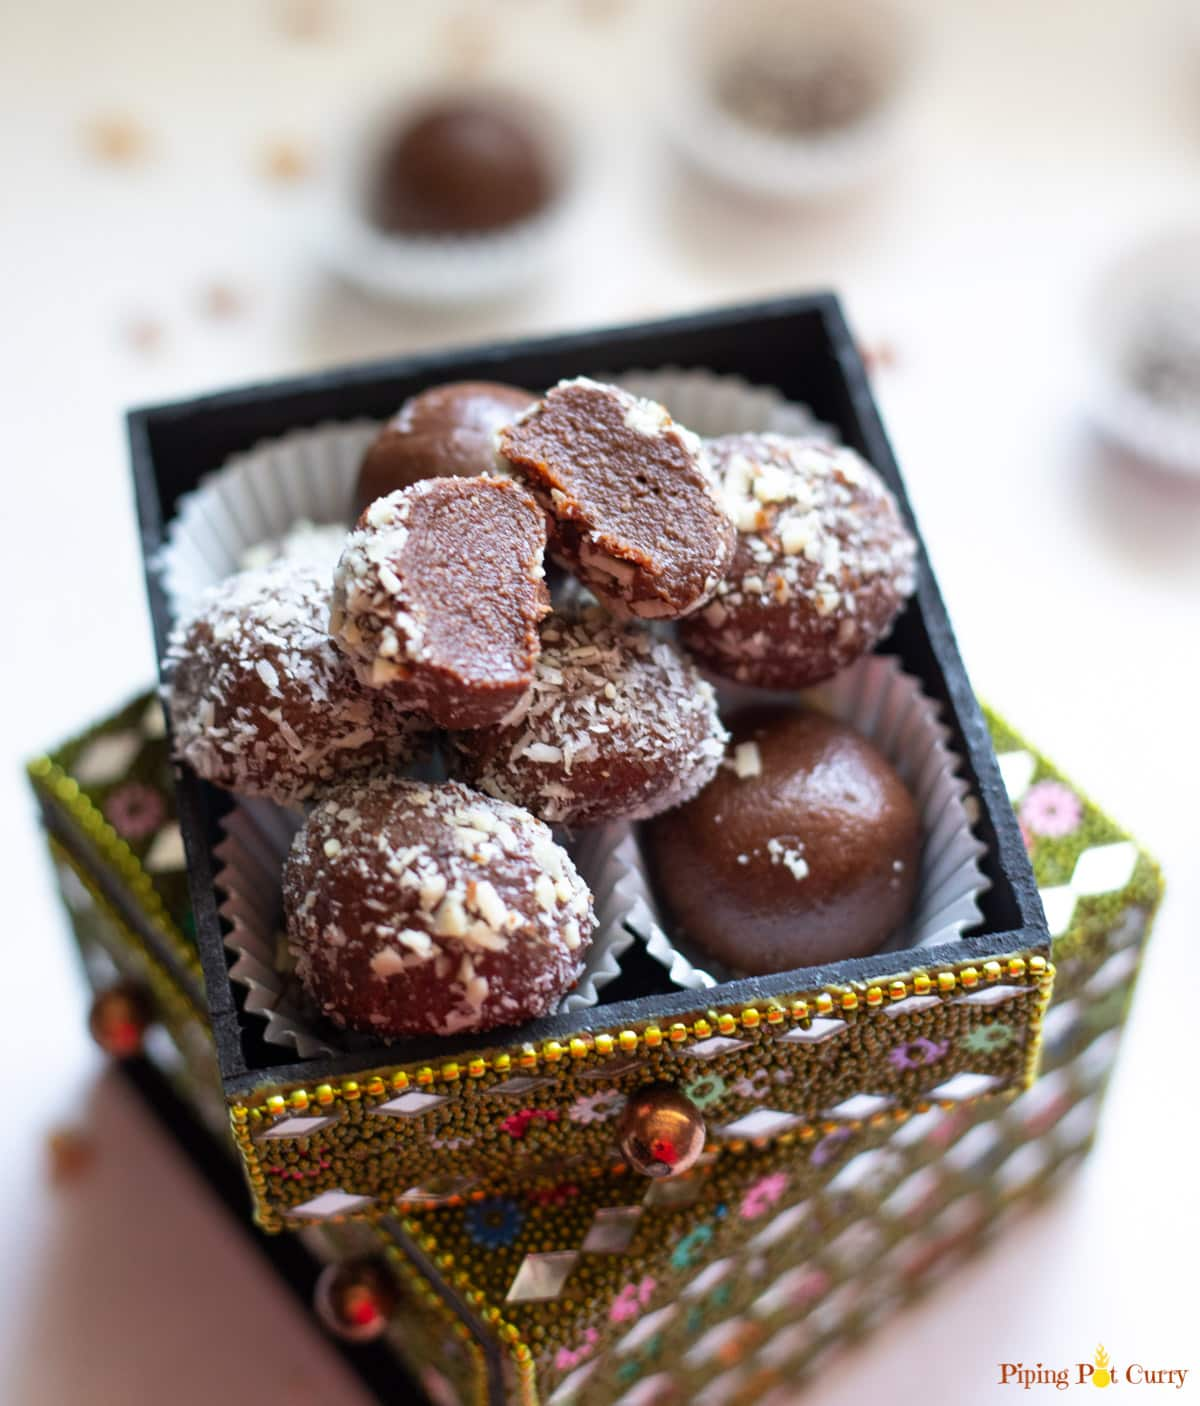 A cut chocolate truffle over other balls in a small decorated box